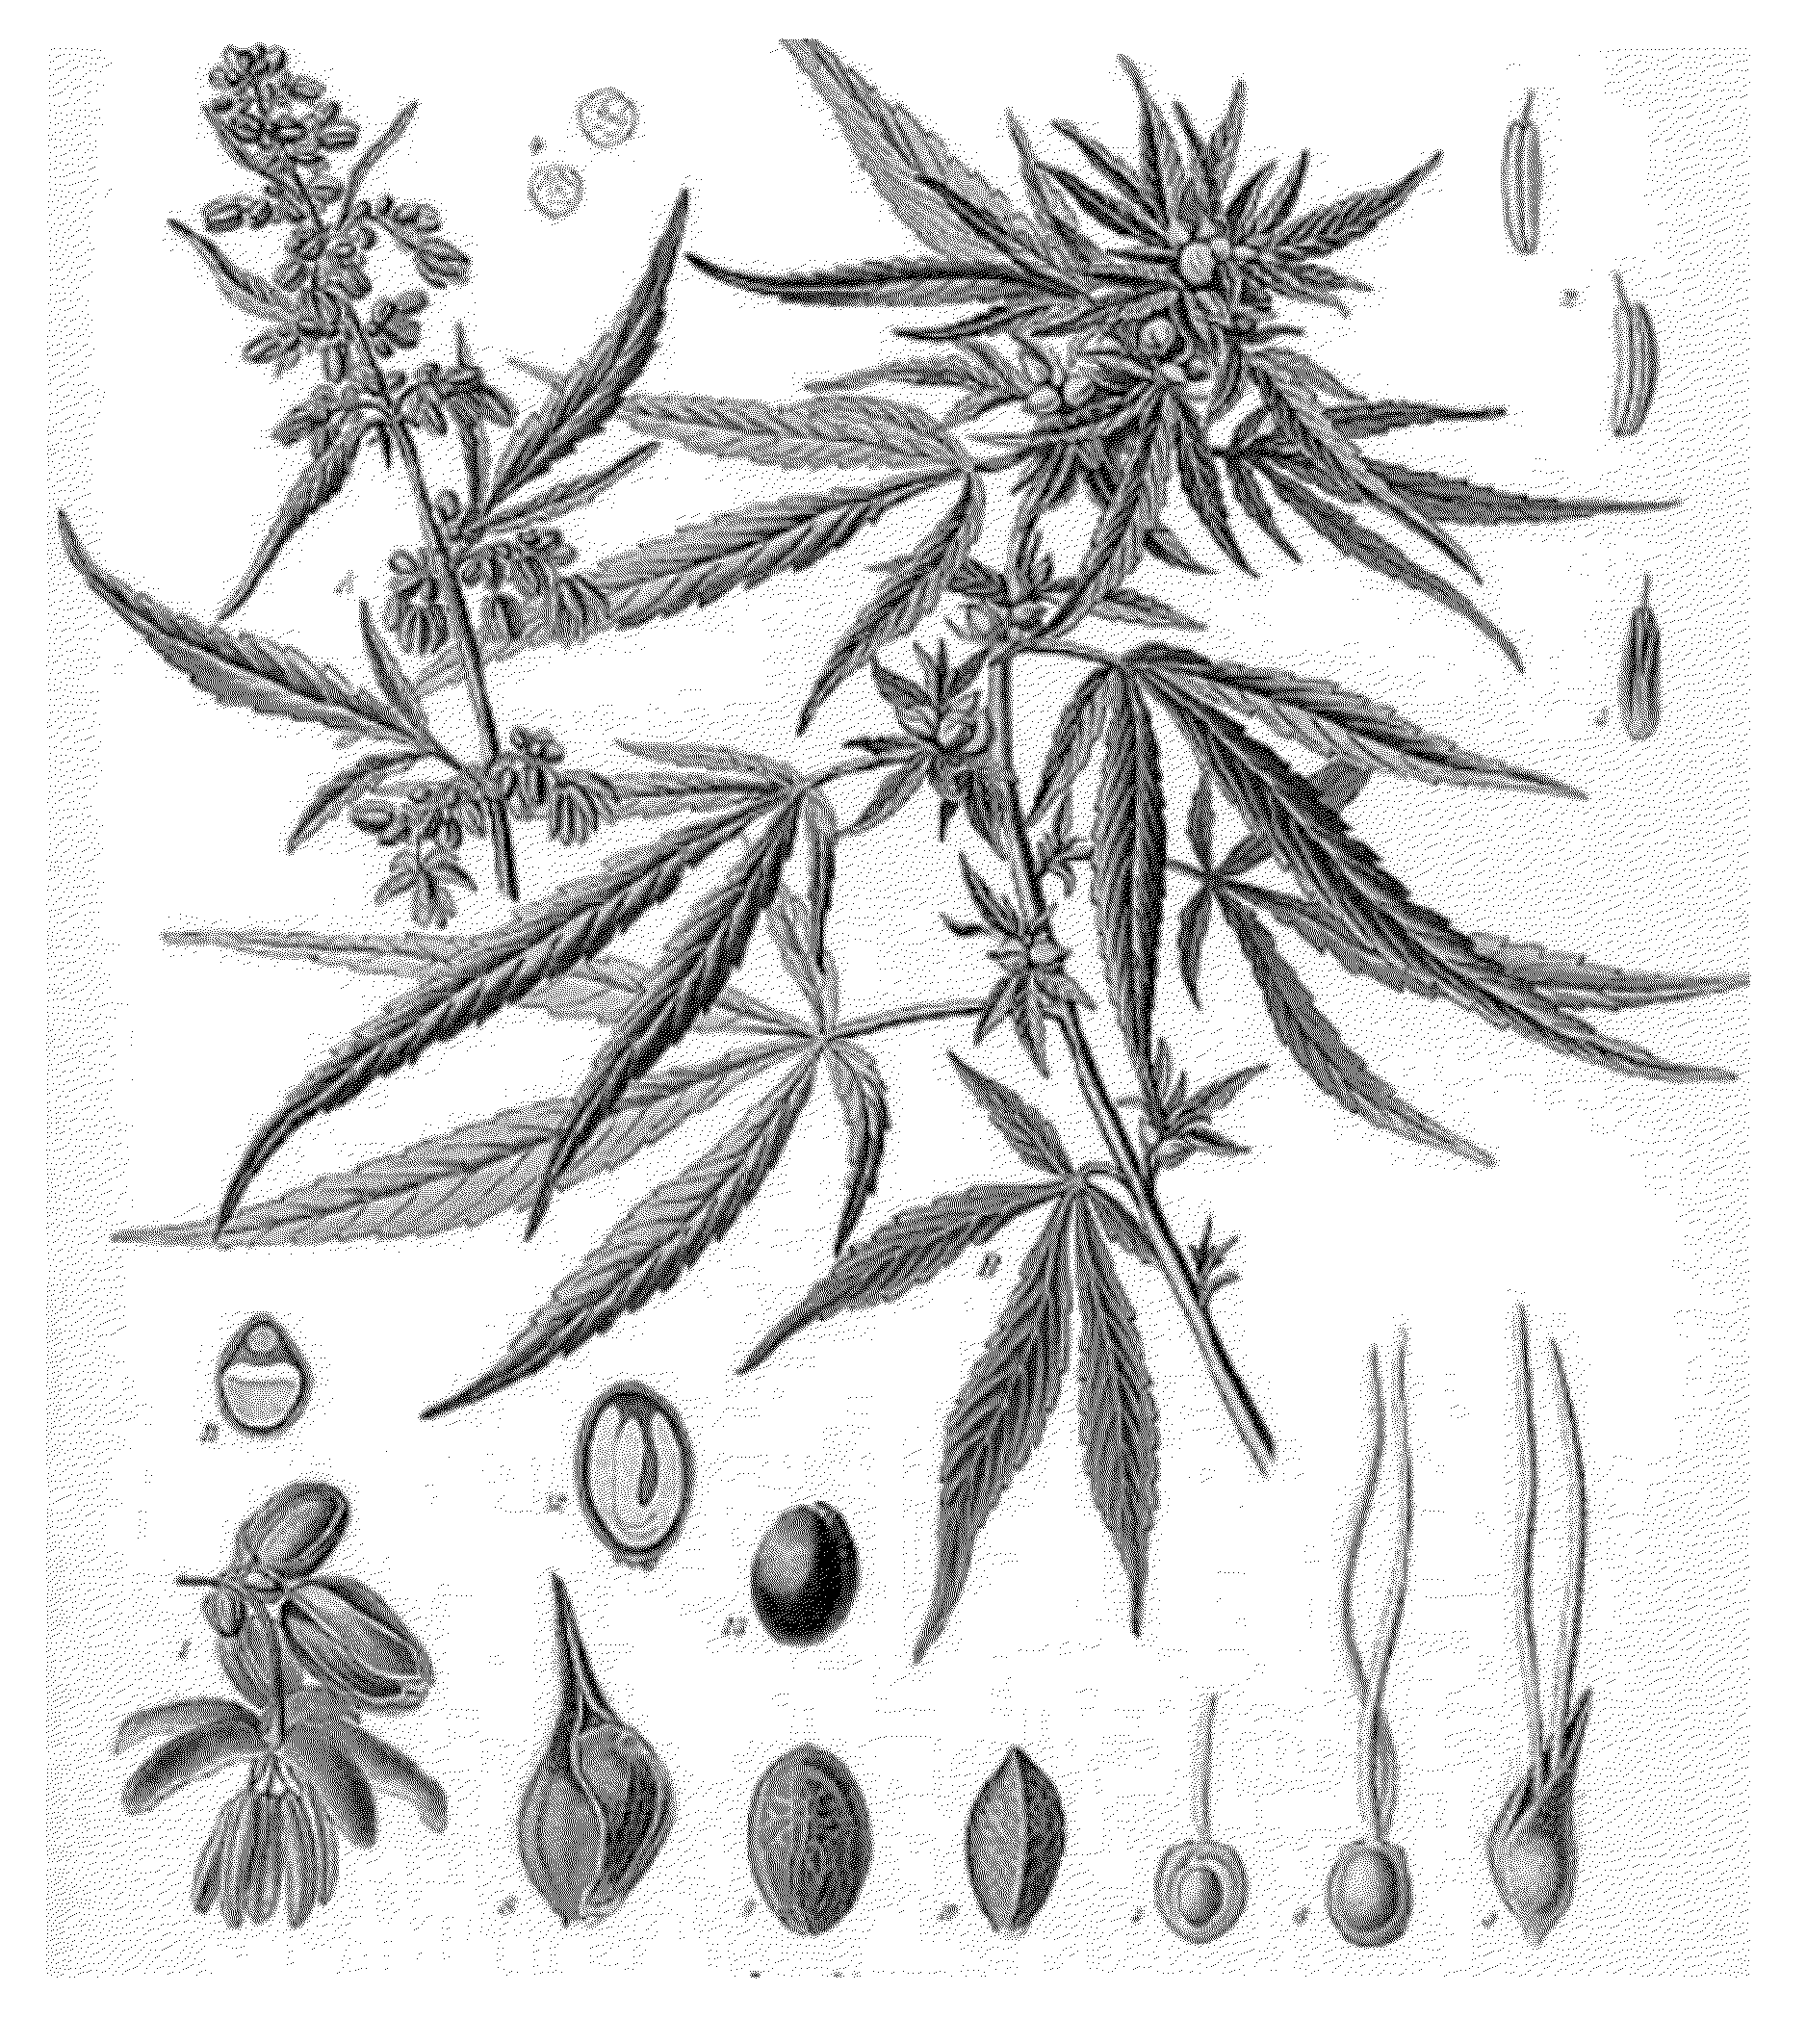 Drawn pot plant weed line Drawing Indicating Patent  Patent